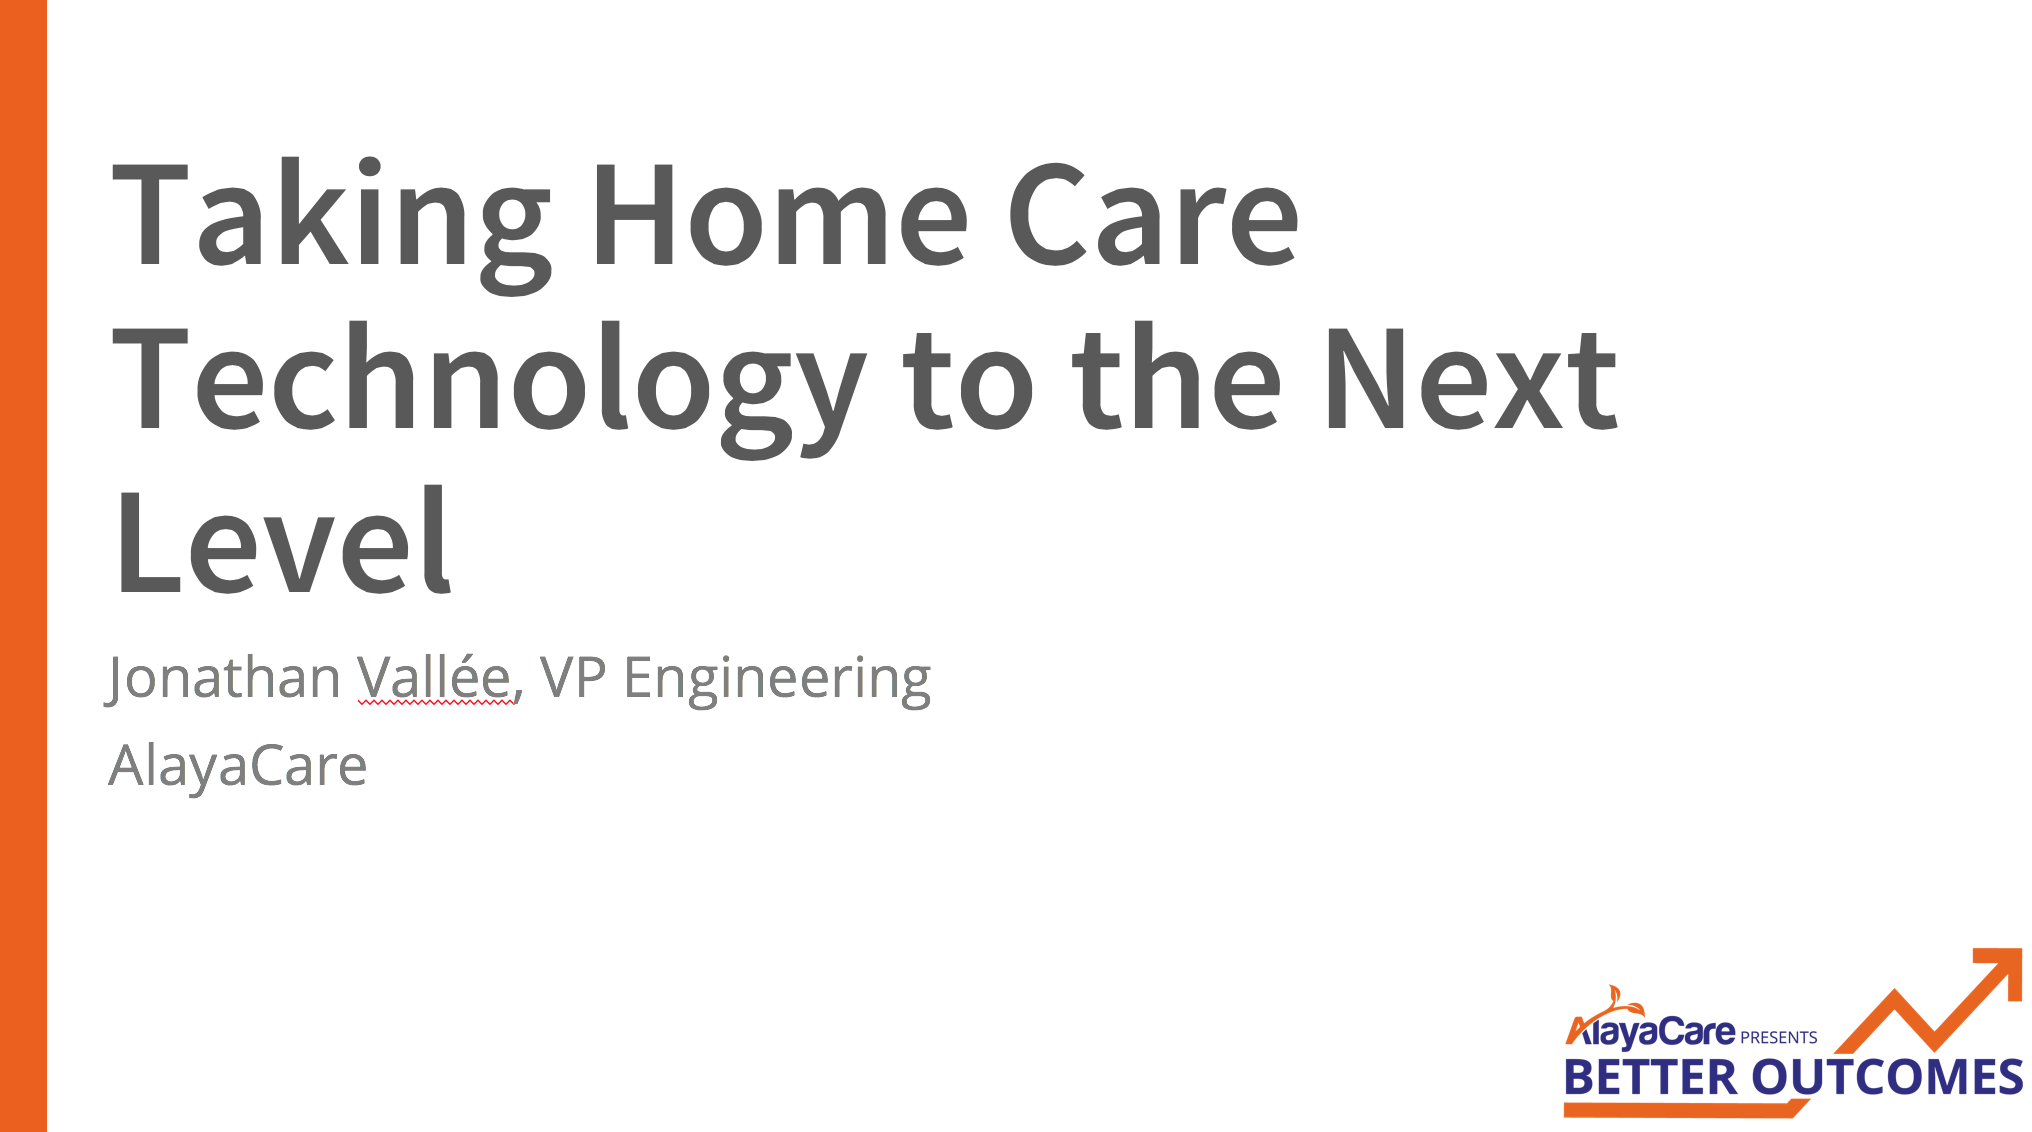 Taking Home Care Technology to the Next Level